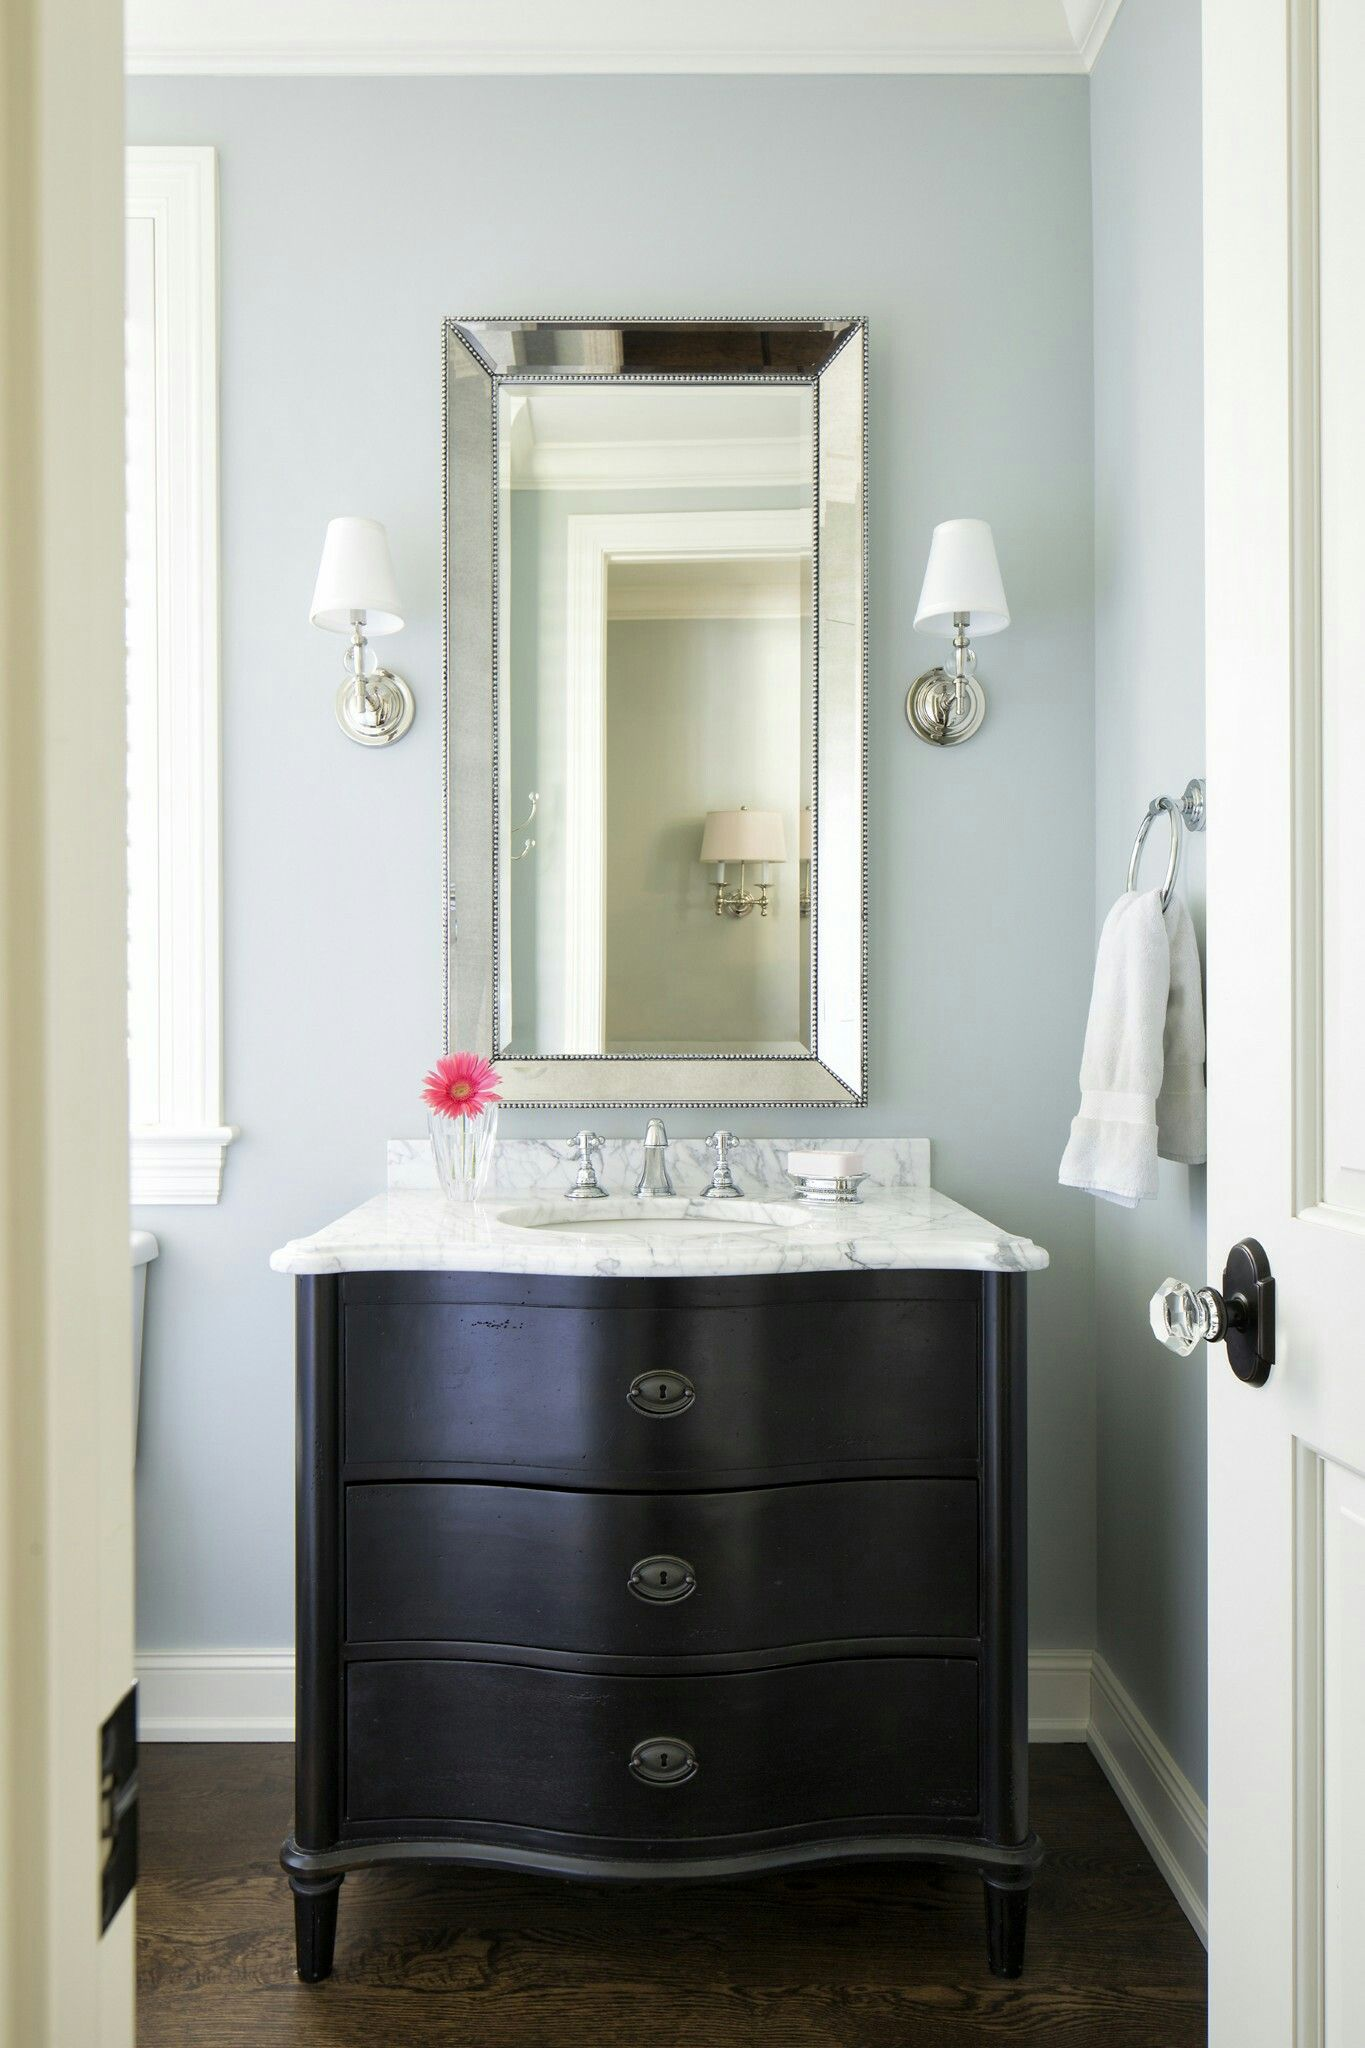 Pinrachel Lytton On Bathroom  Pinterest  Small Bathroom Inspiration Popular Paint Colors For Small Bathrooms Inspiration Design